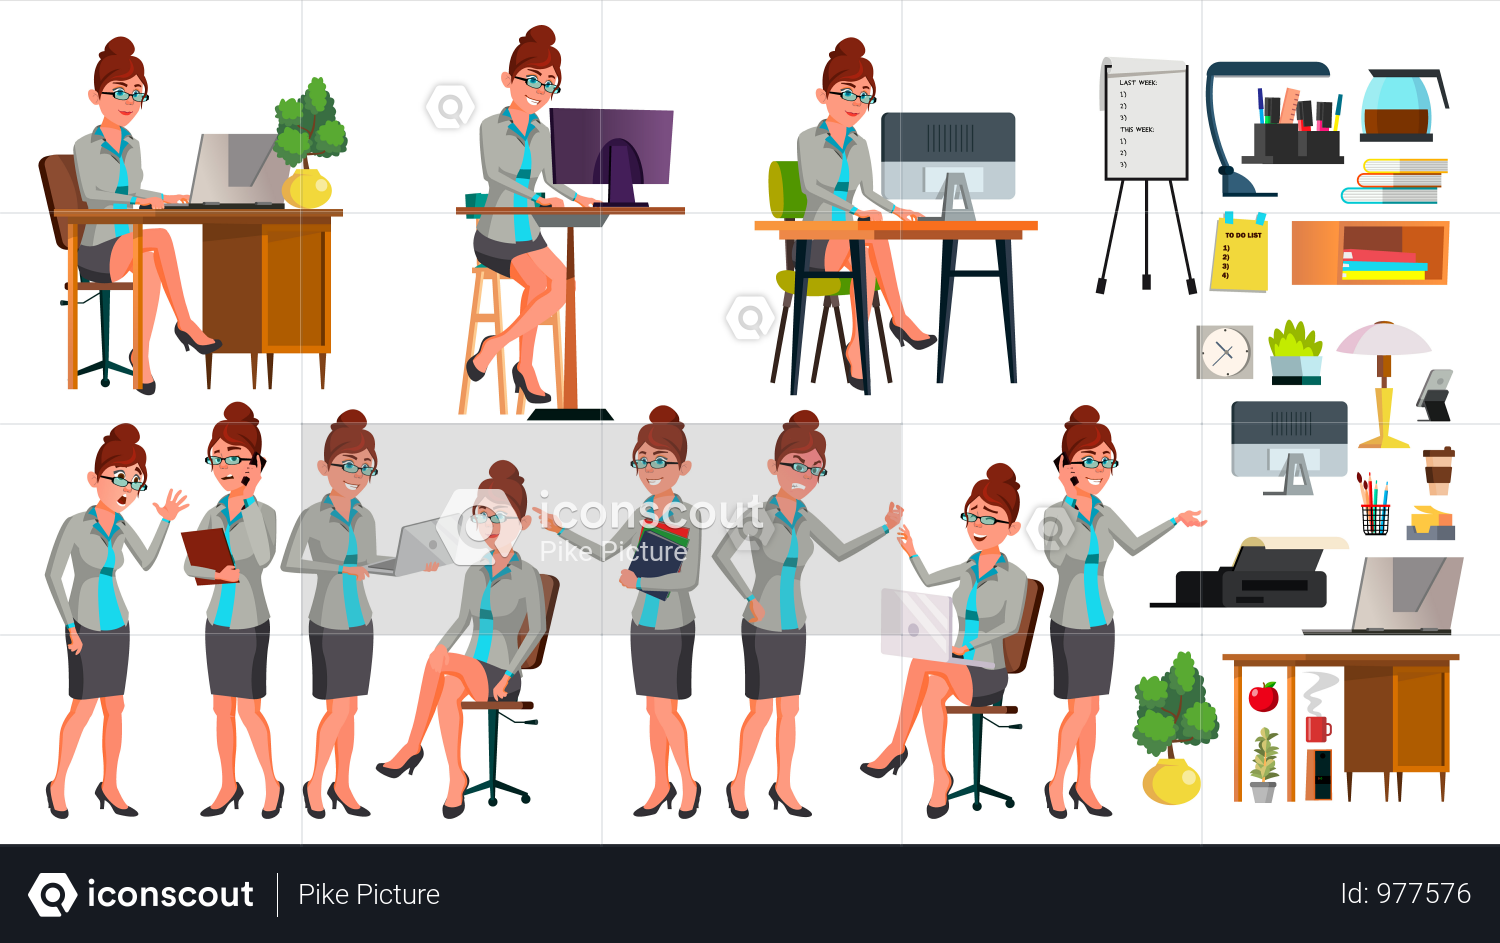 Premium Businesswoman Working In Office Illustration Download In Png Vector Format Business Women People Illustration Illustration